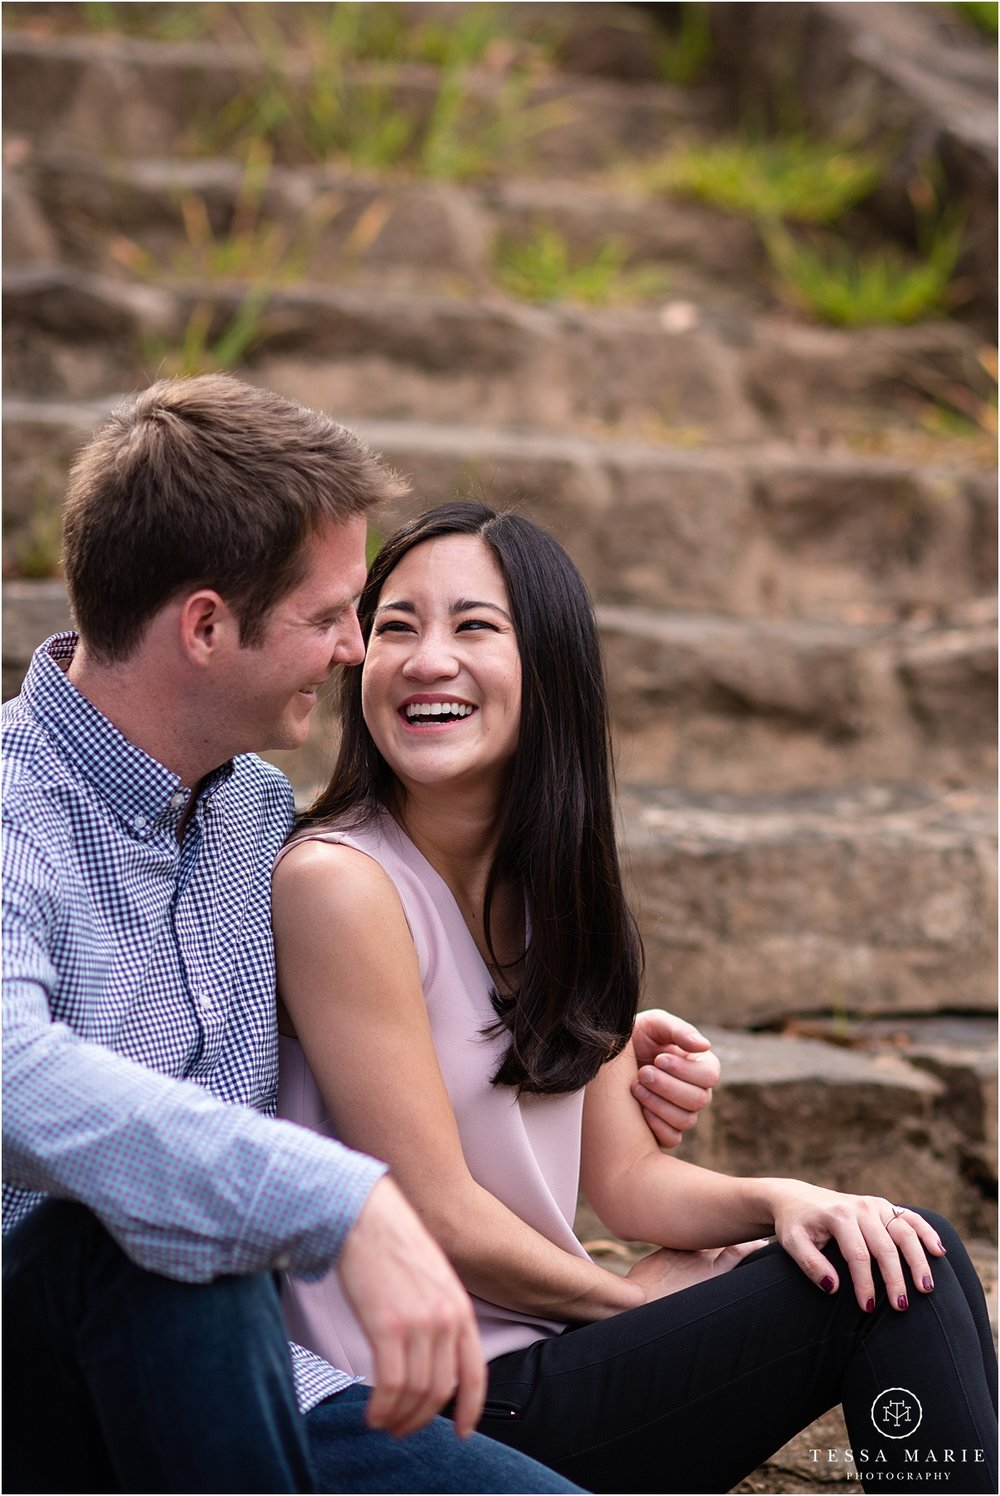 Tessa_marie_photography_wedding_photographer_engagement_pictures_piedmont_park_0081.jpg